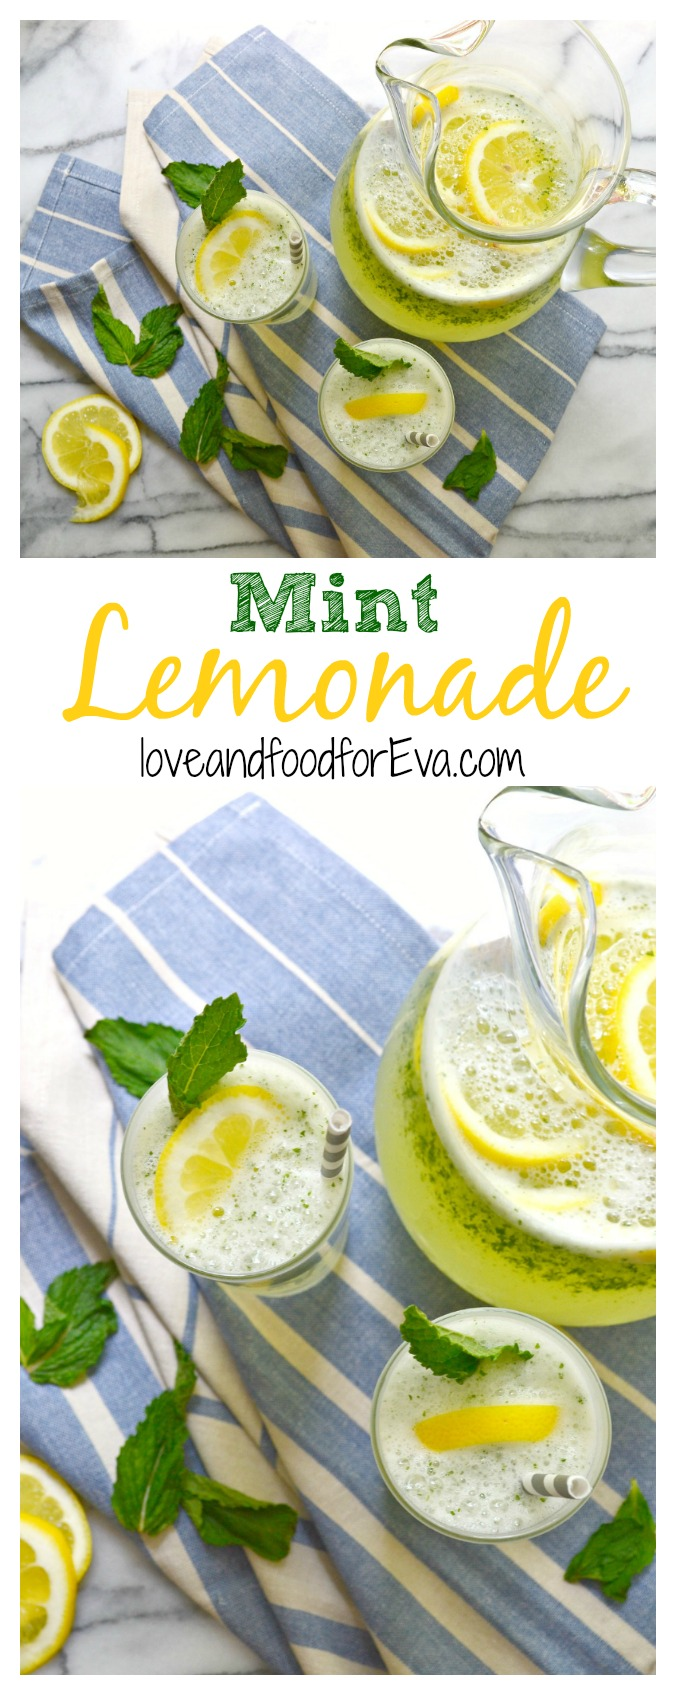 Hot temperatures? This incredibly refreshing Mint Lemonade is exactly what you need to quench your thirst!